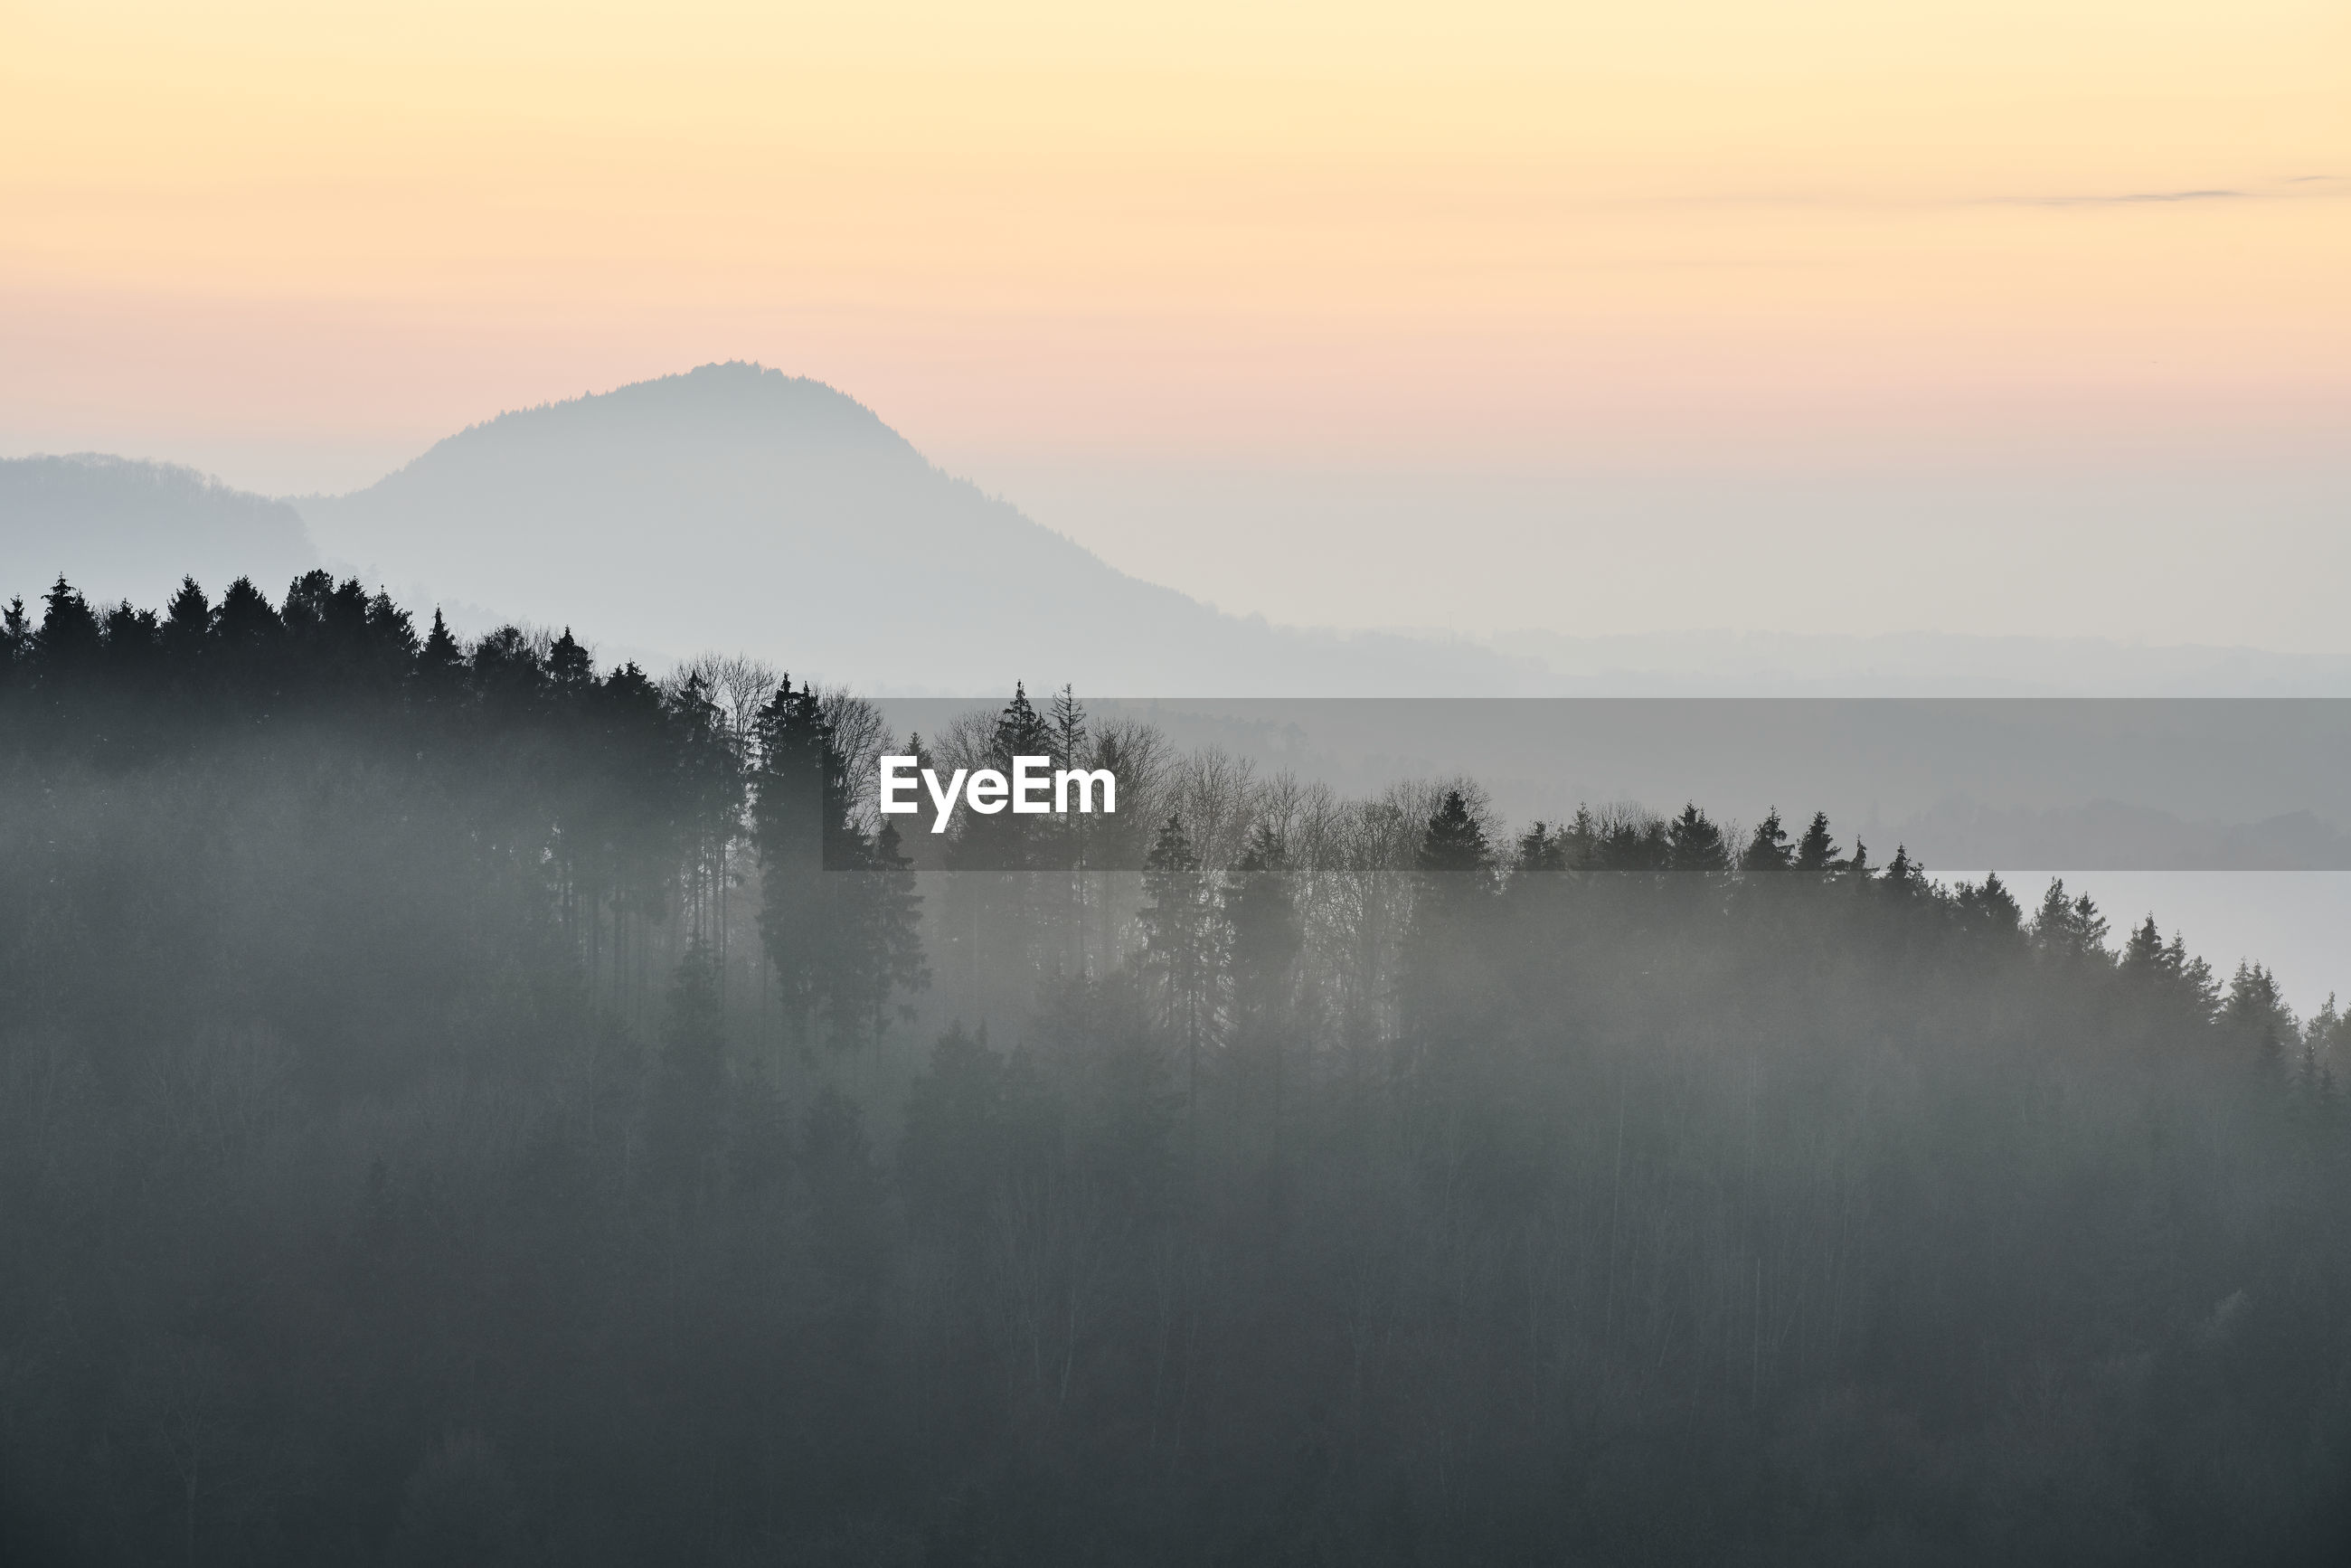 SCENIC VIEW OF TREES ON MOUNTAIN AGAINST SKY AT SUNSET